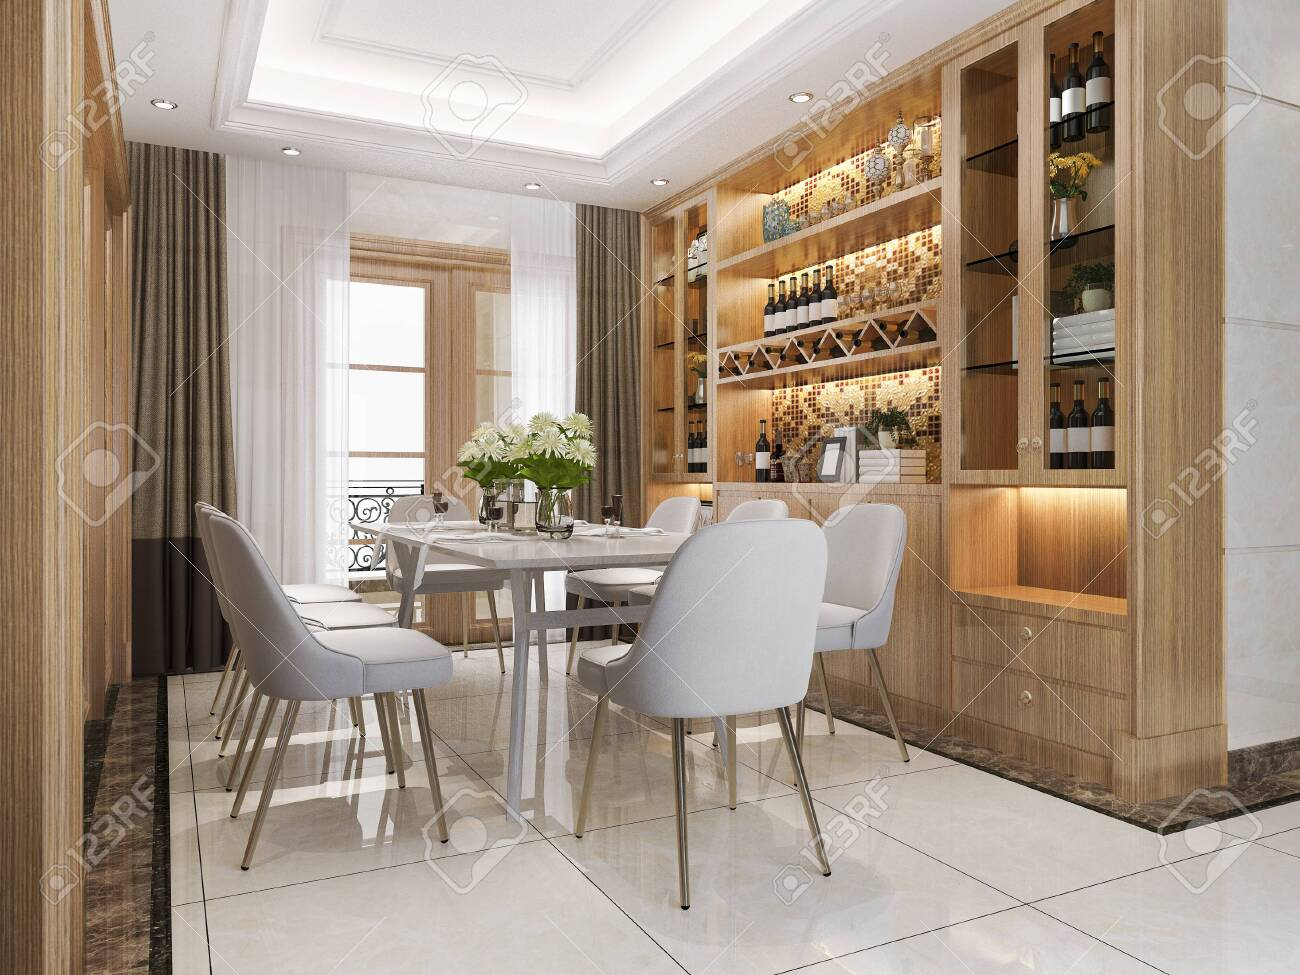 3d rendering modern dining room and living room with luxury decor wine shelf - 142634164